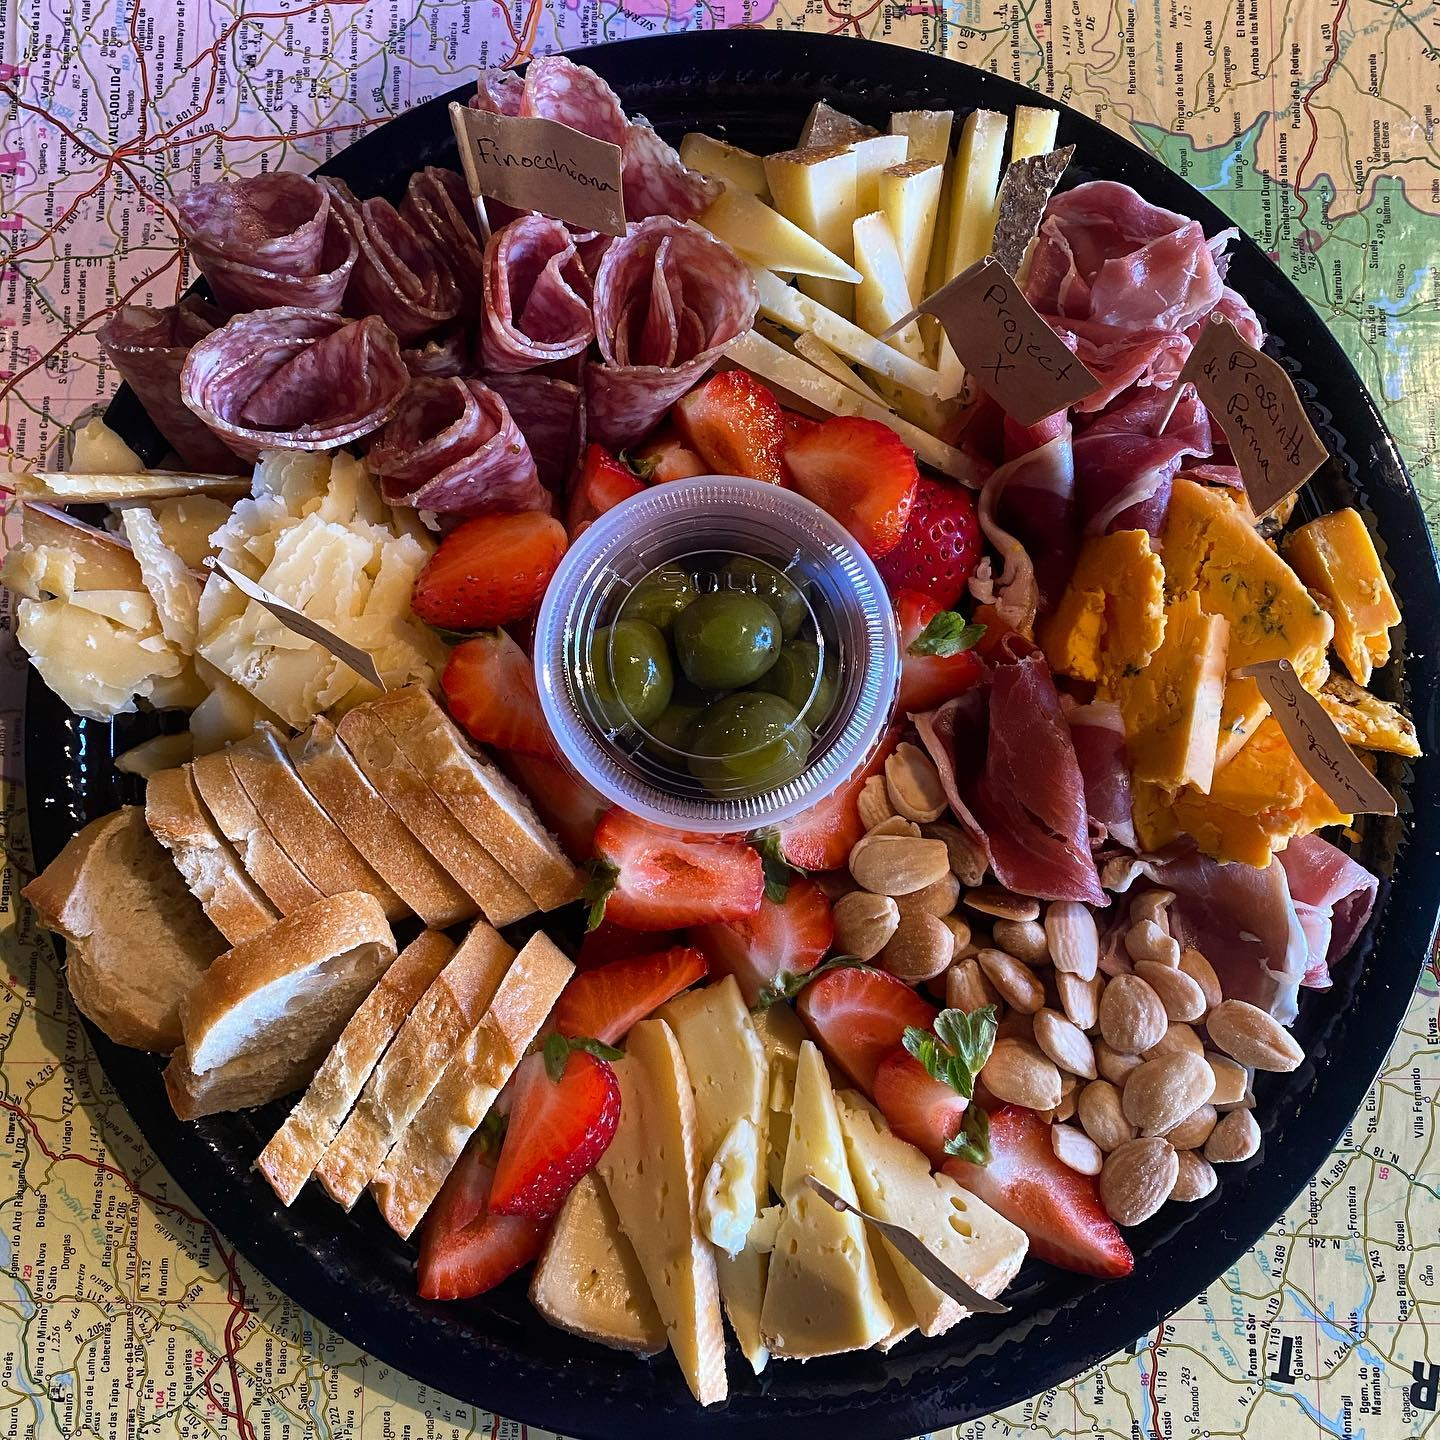 Charcuterie board of assorted cheeses, meats, nuts, berries and breads.